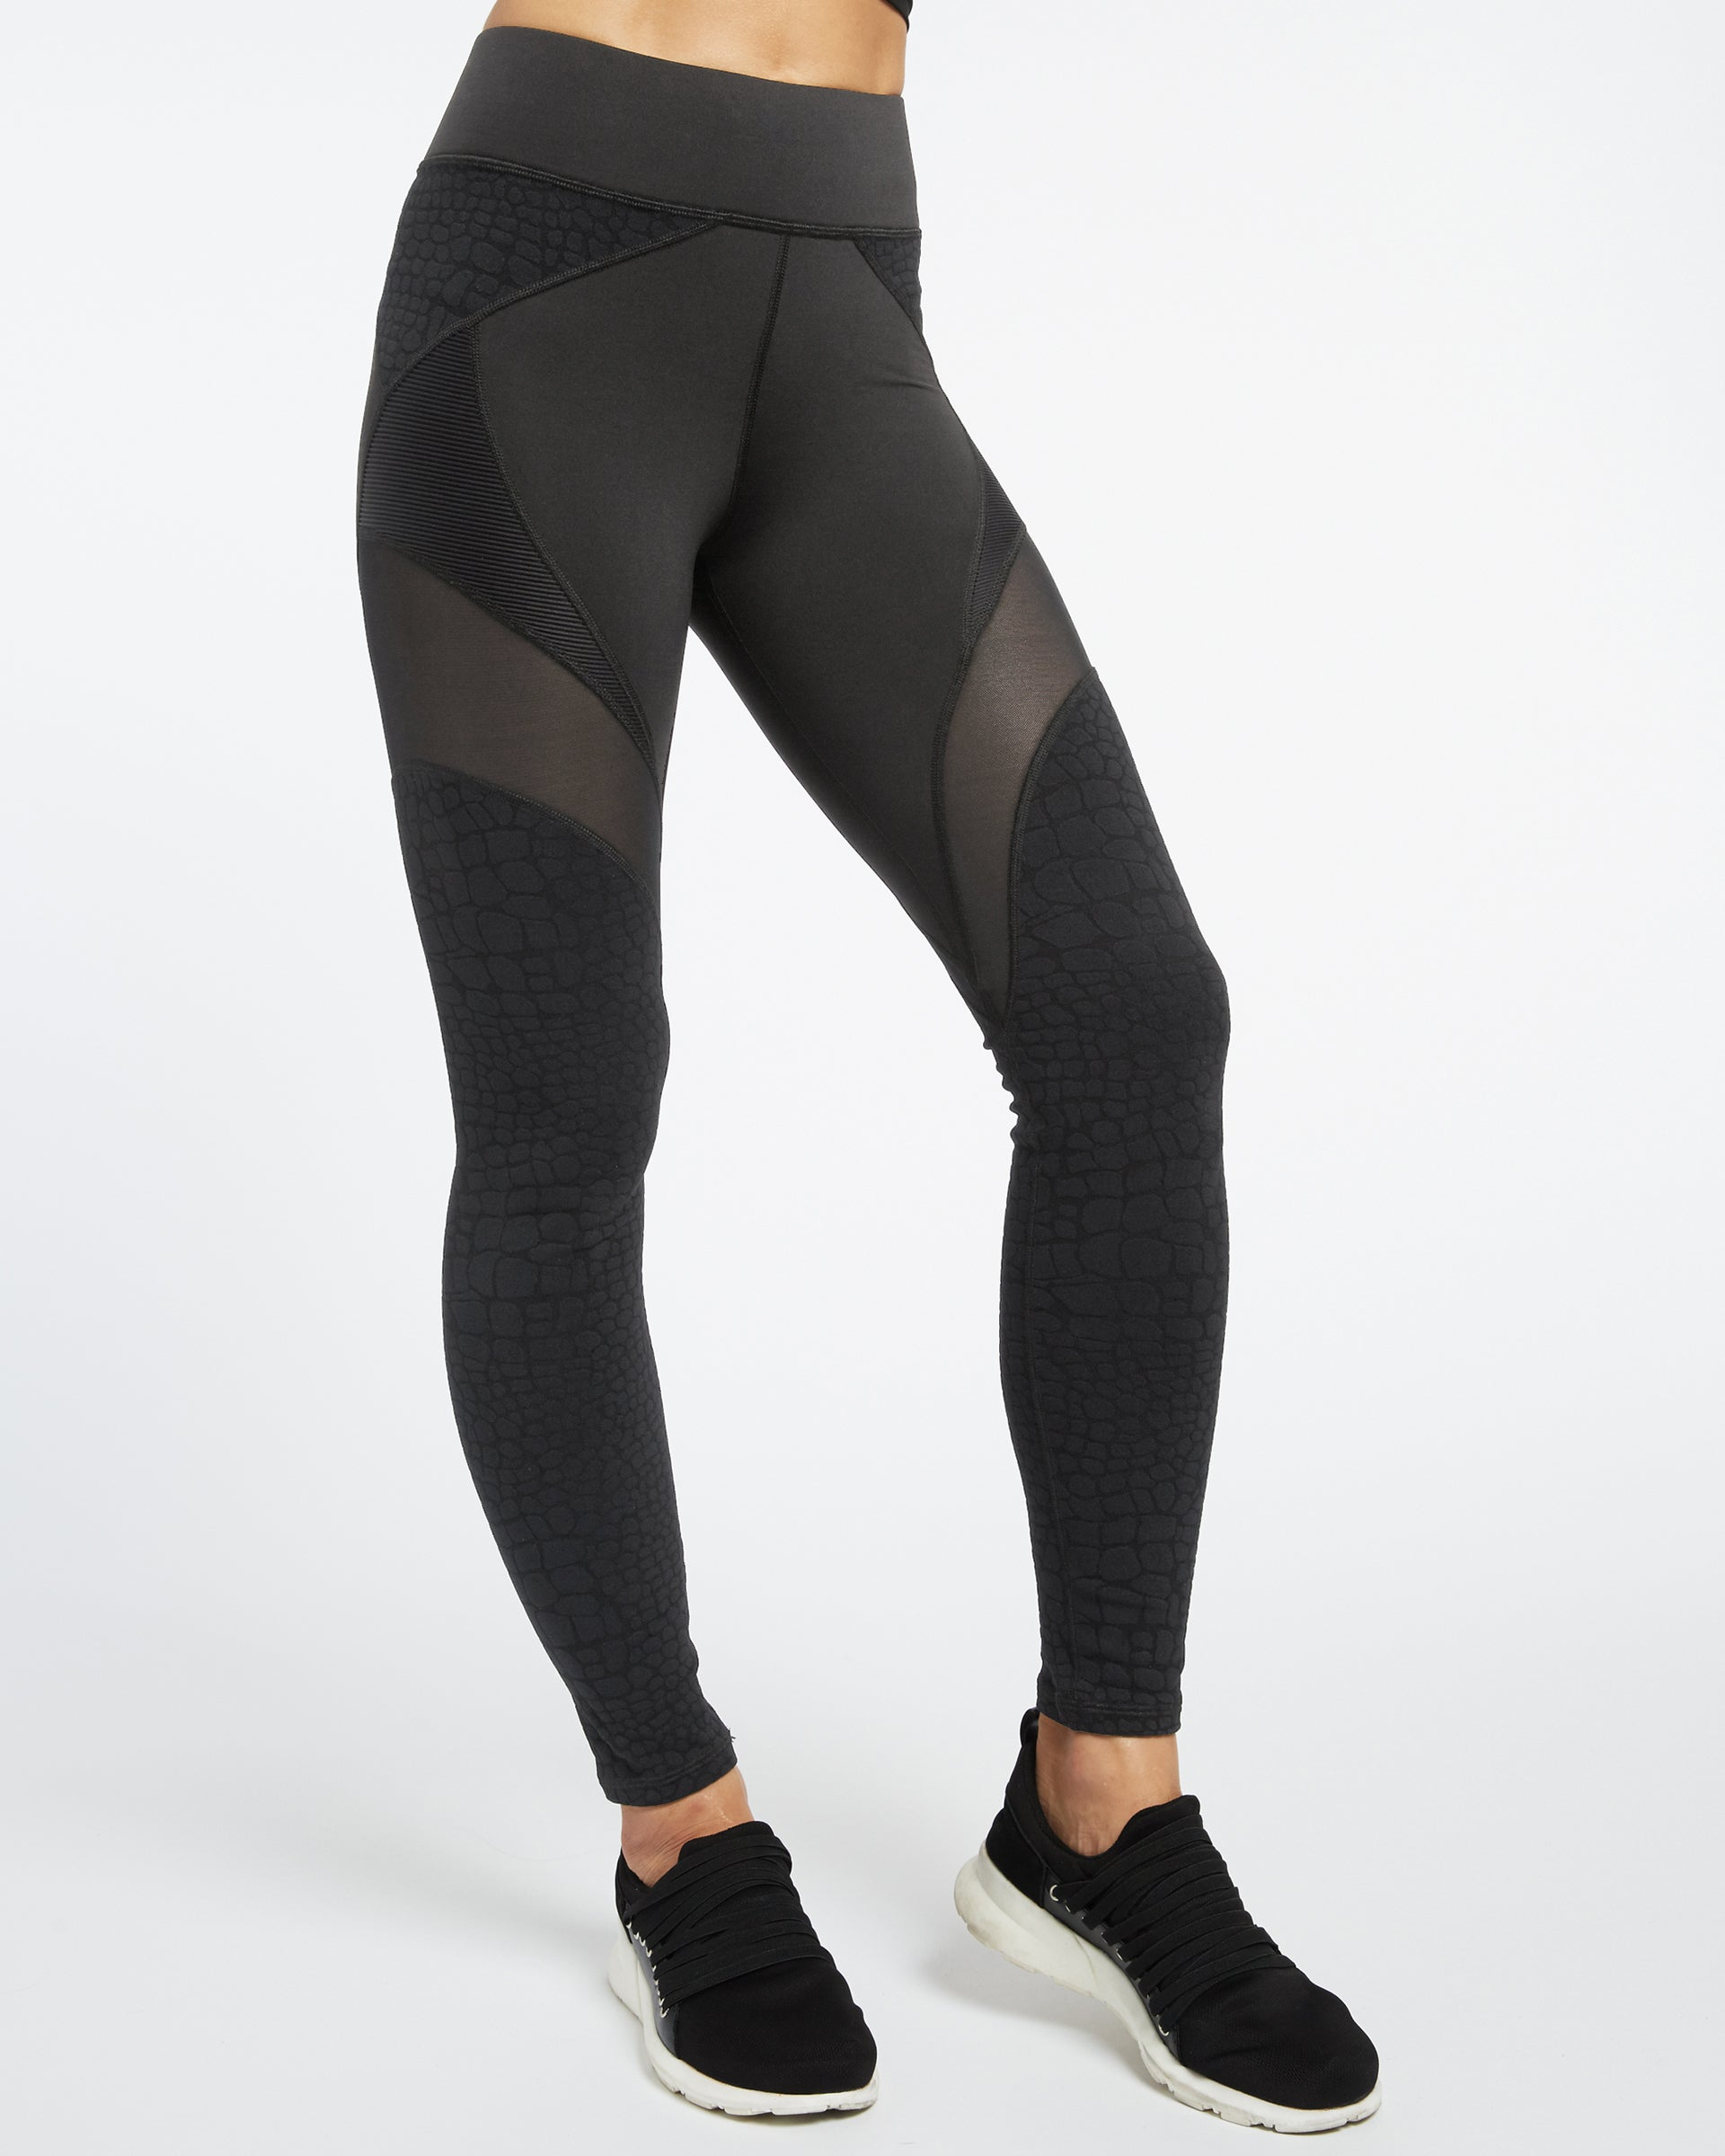 Mirage Legging - Black Croc